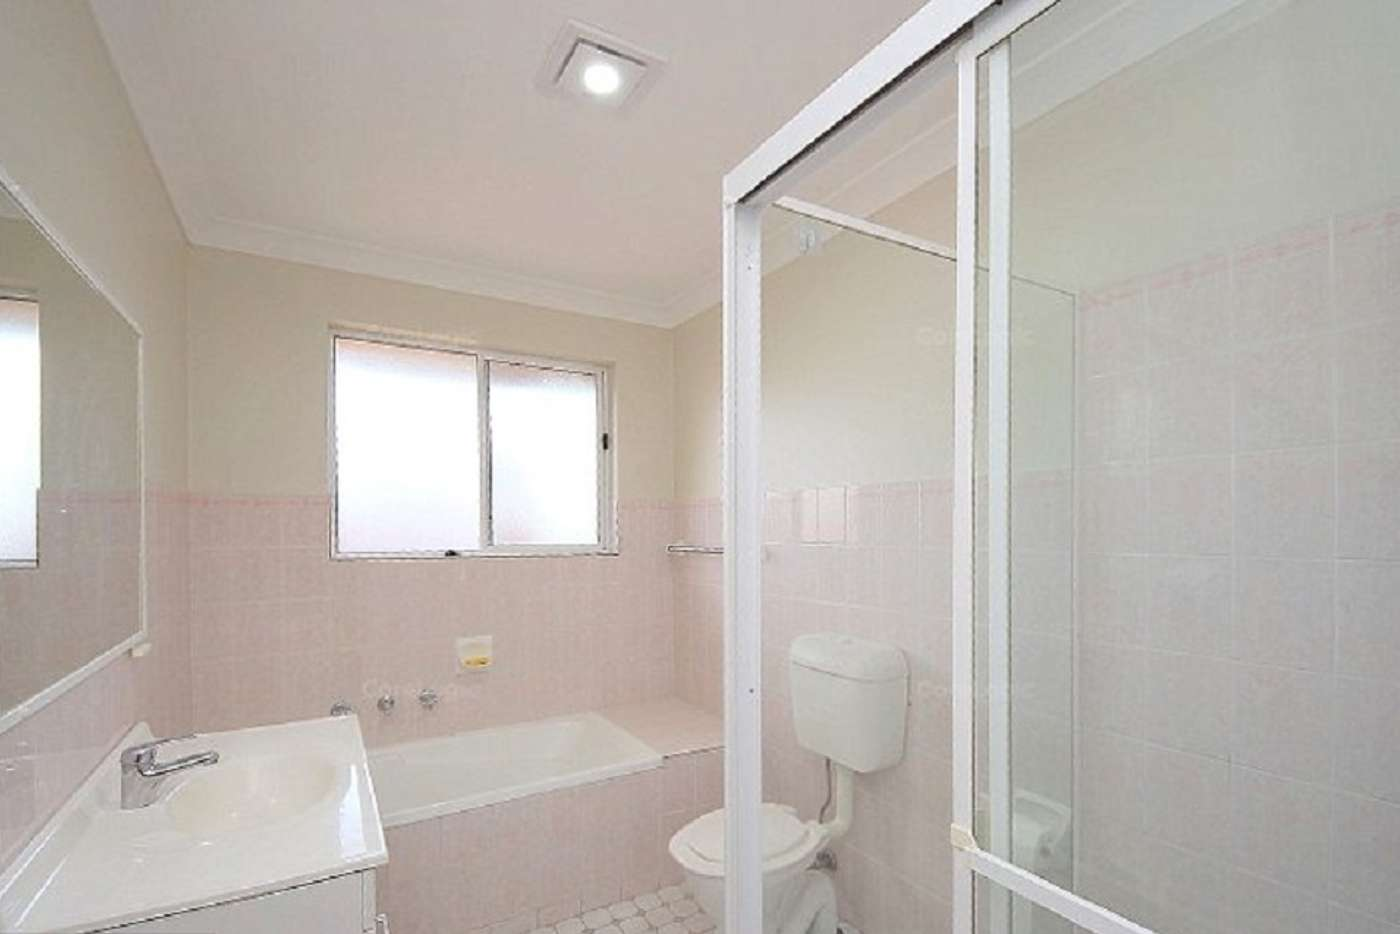 Sixth view of Homely apartment listing, 15/90 Brancourt Avenue, Yagoona NSW 2199